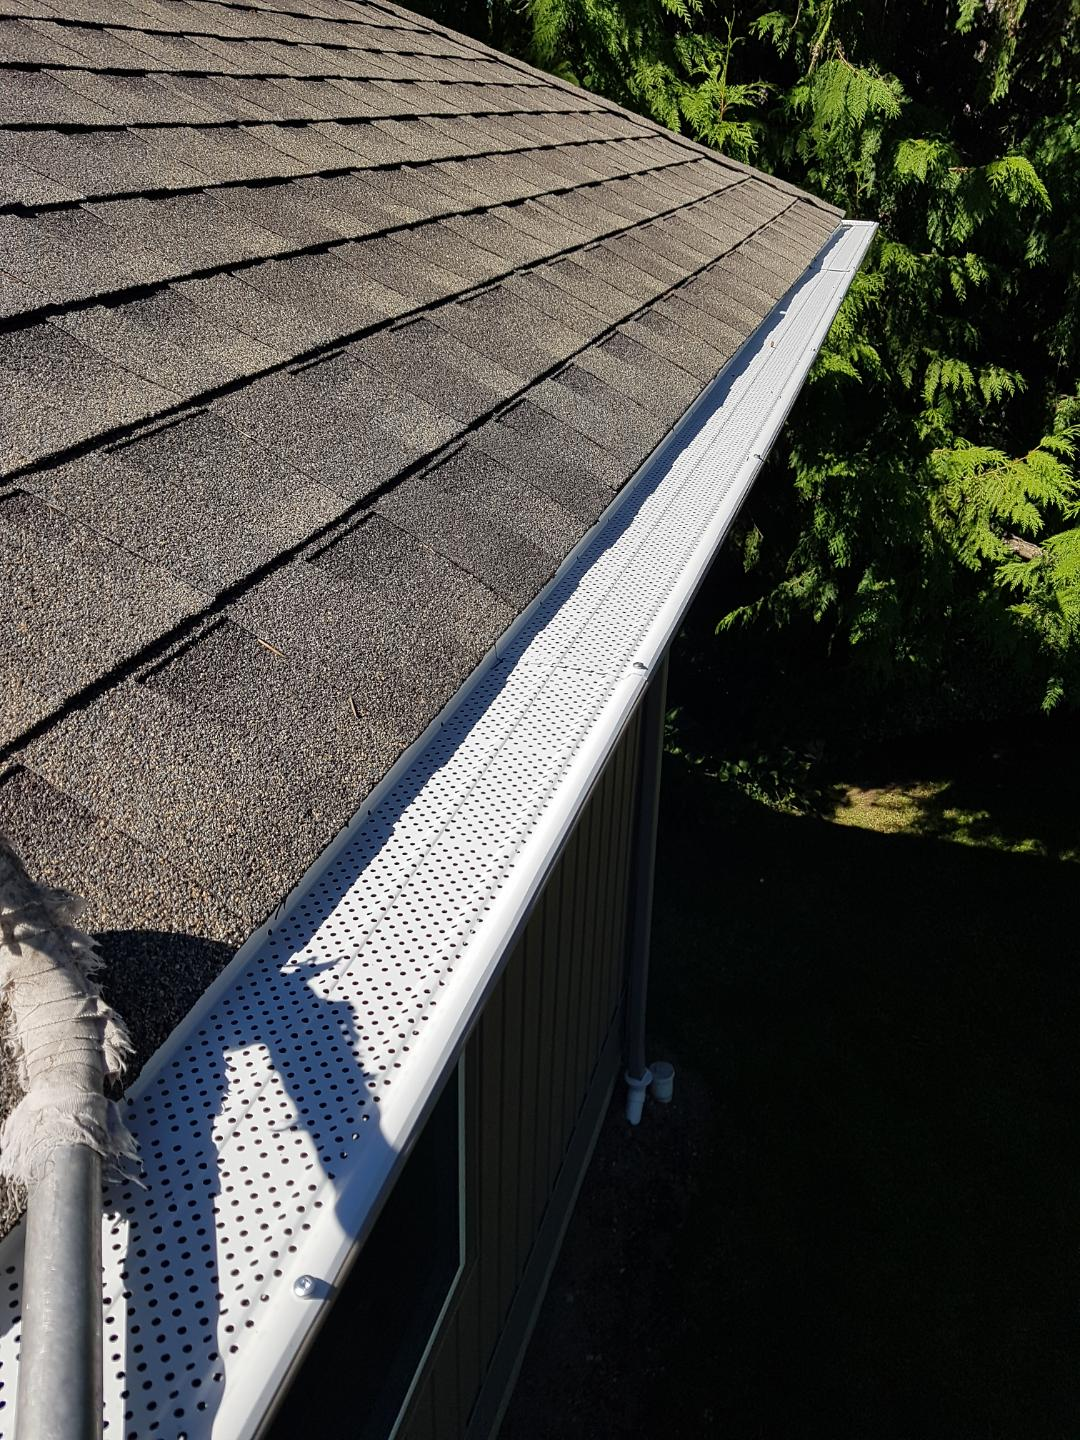 Leaf Guard Gutter Cover Installation Services Mr Sparkle Exterior Cleaning Nanaimo